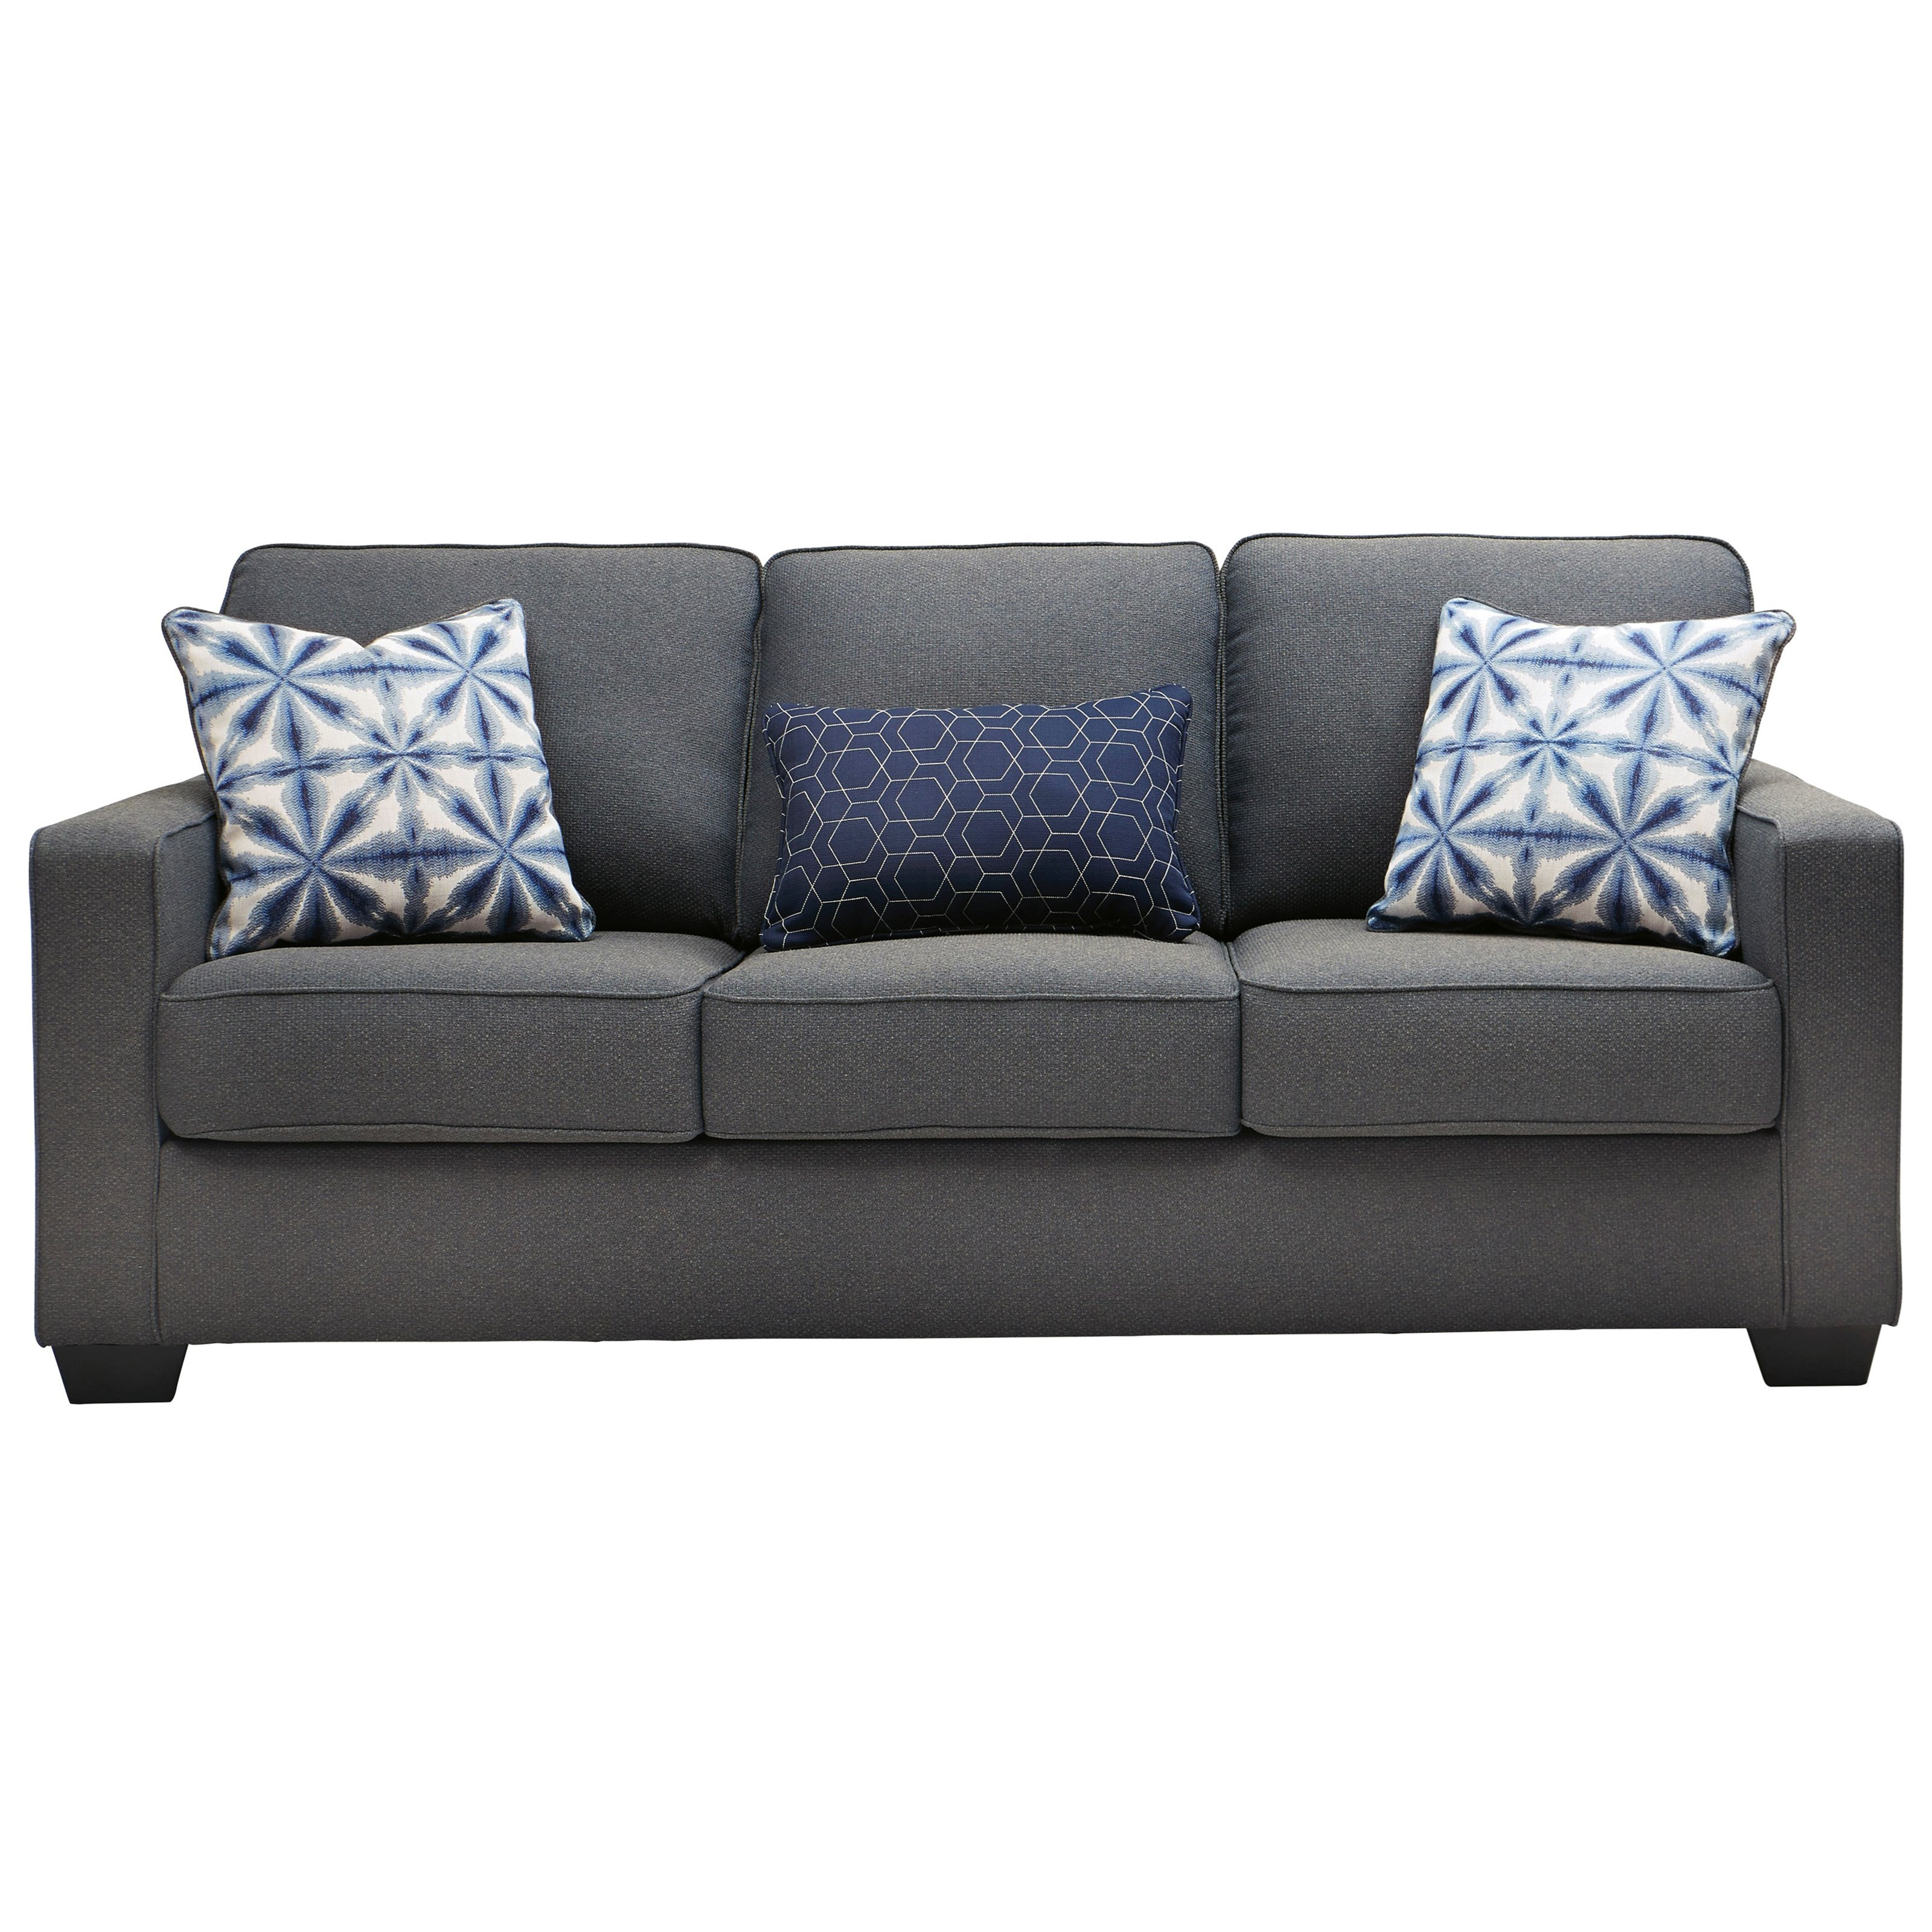 Kiessel Nuvella Sofa by Benchcraft at Houston's Yuma Furniture